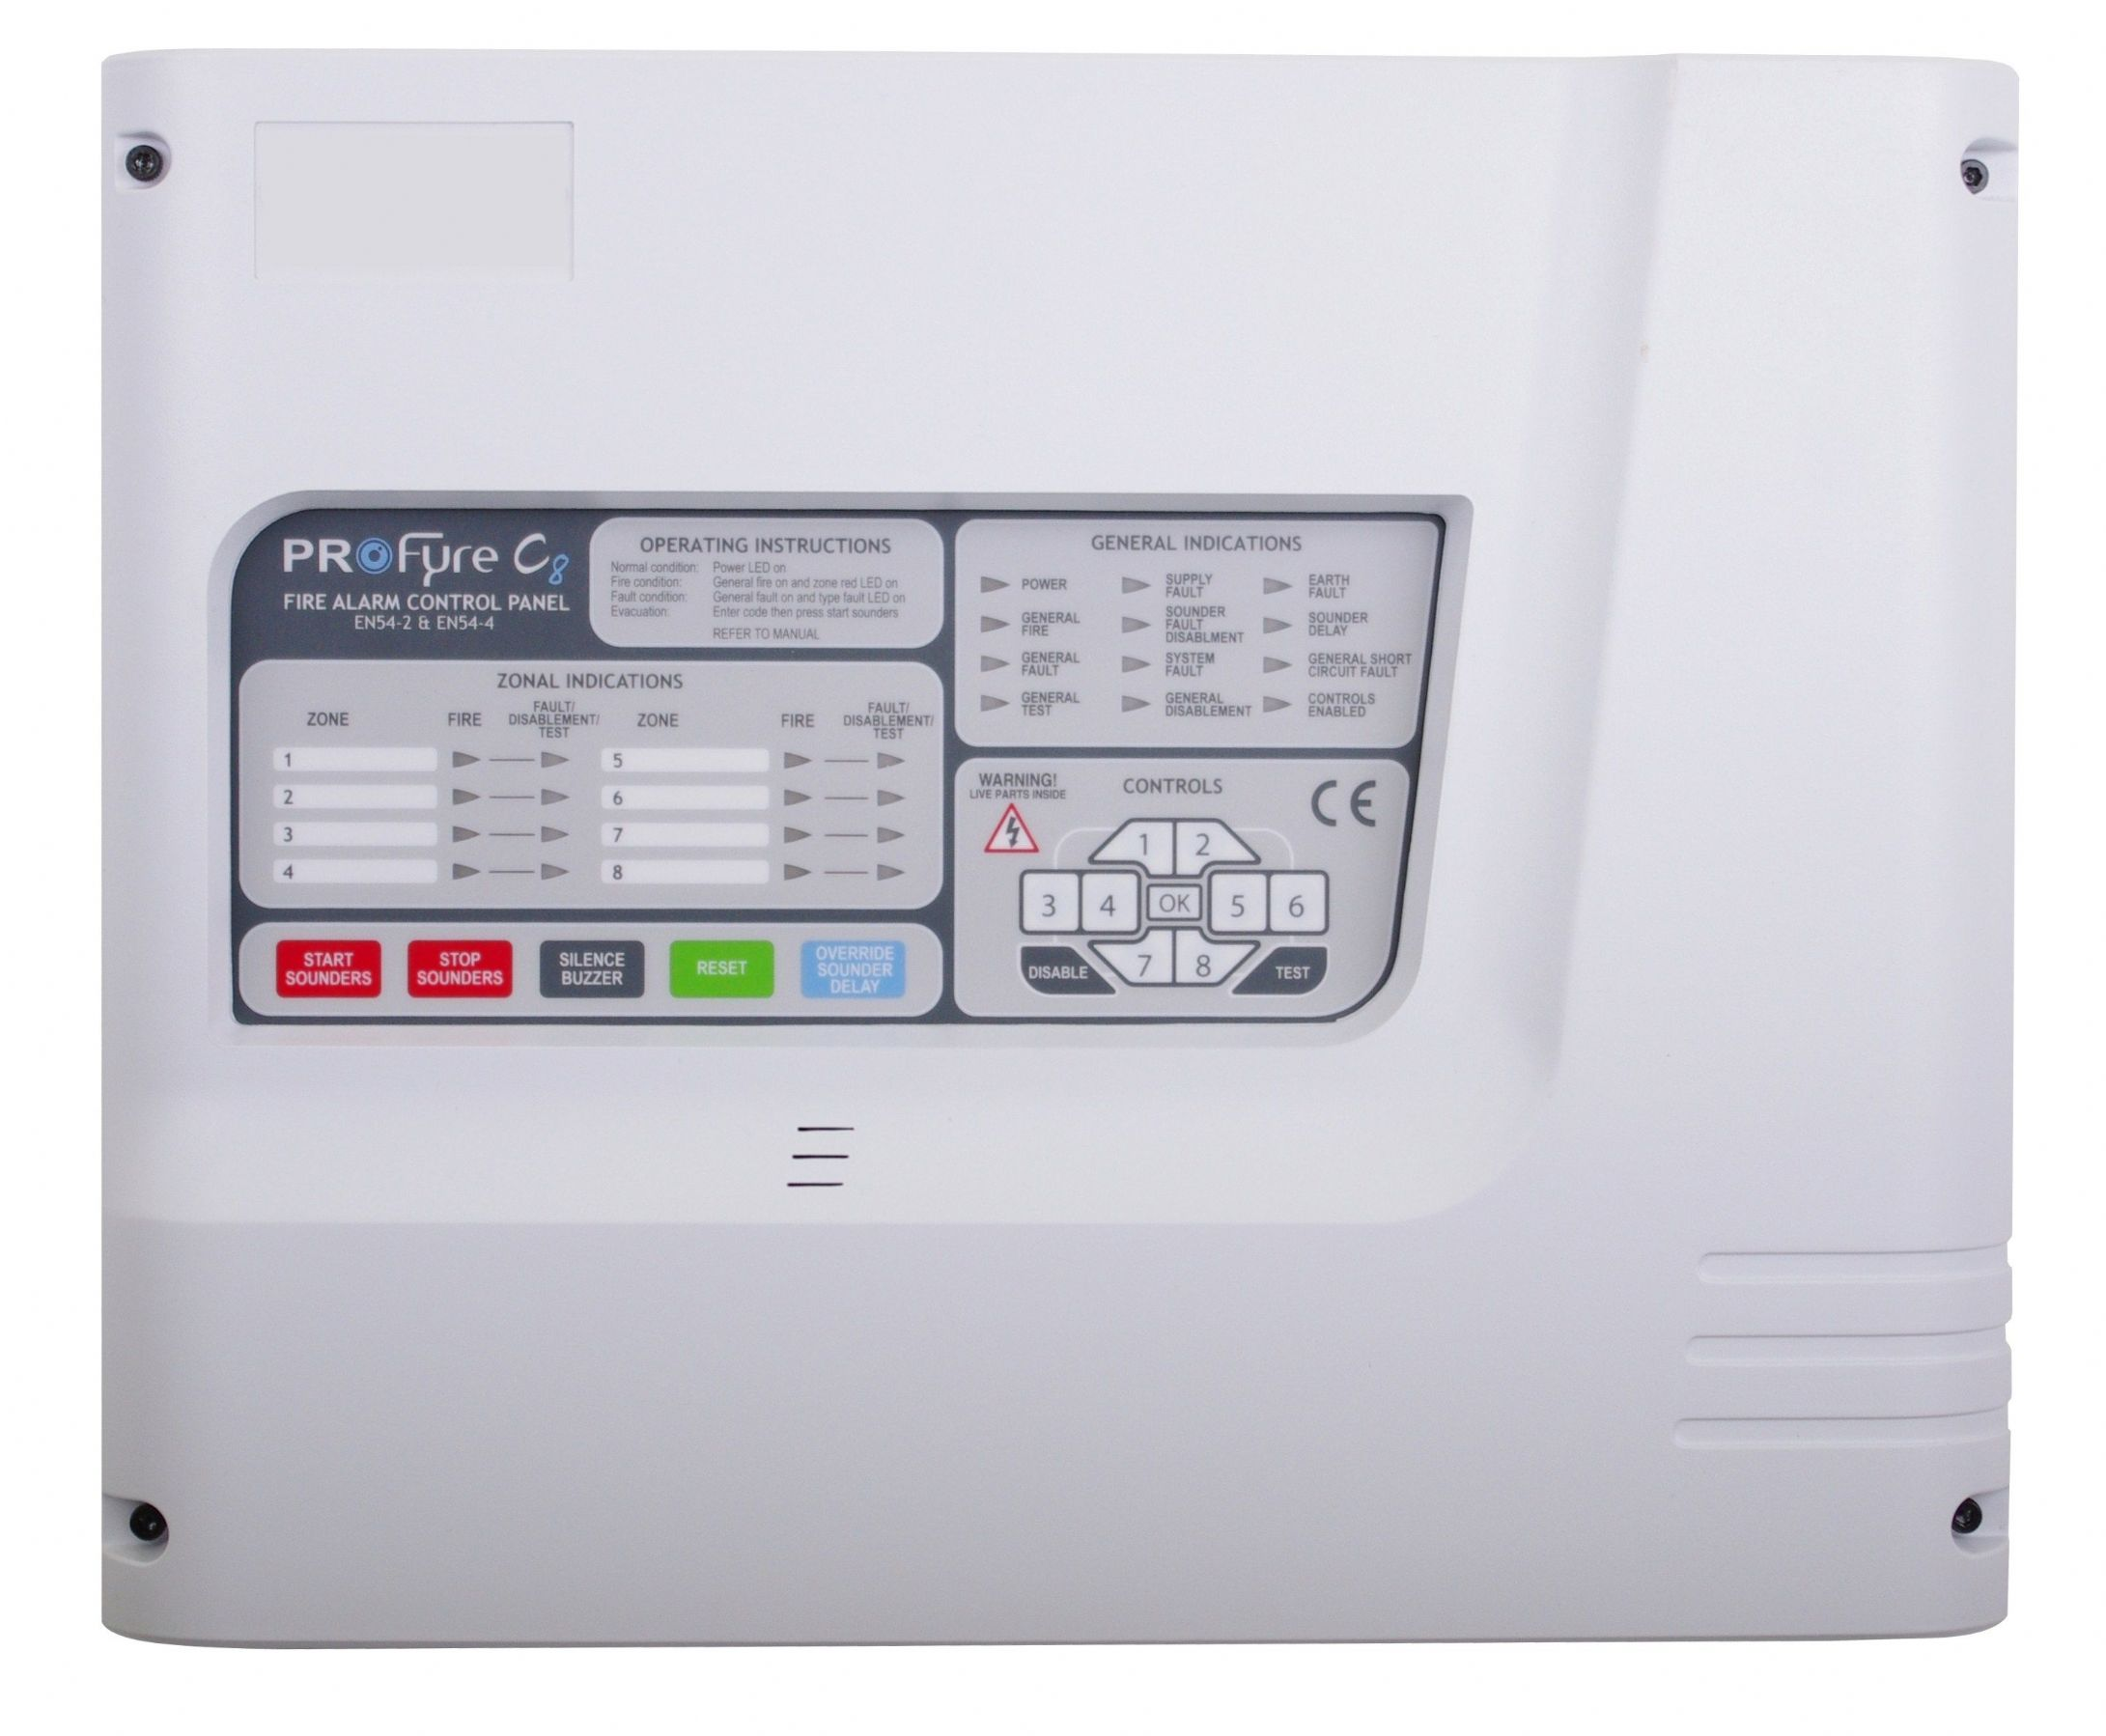 C8 2 profyre c8 2 zone conventional fire alarm panel in1 zeta infinity 1 zone conventional fire alarm panel freerunsca Gallery